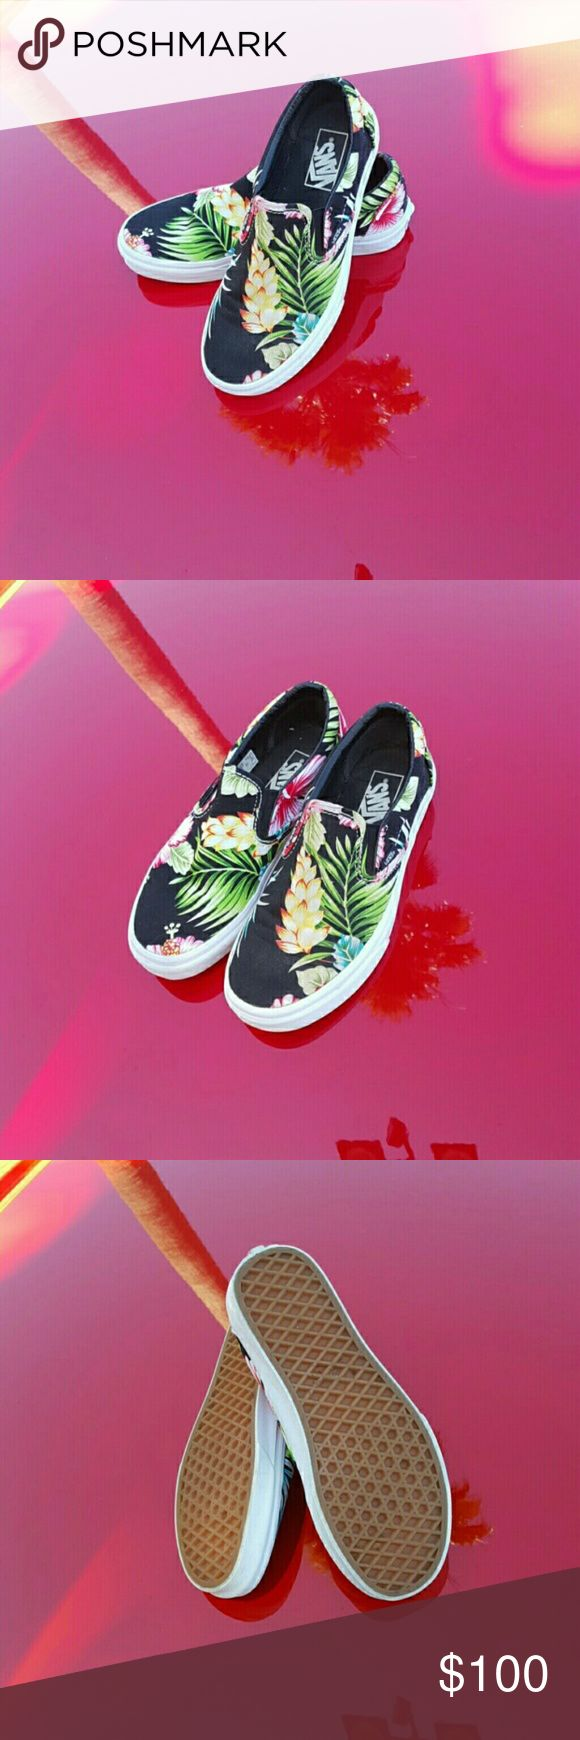 SALE!! Tropical Vans Slip-On Shoes  Women's size 7.5, Men's size 6 Brand new condition! Black background with bright tropical pattern. Scarlett Johansson ran errands in these. Vans Shoes Sneakers